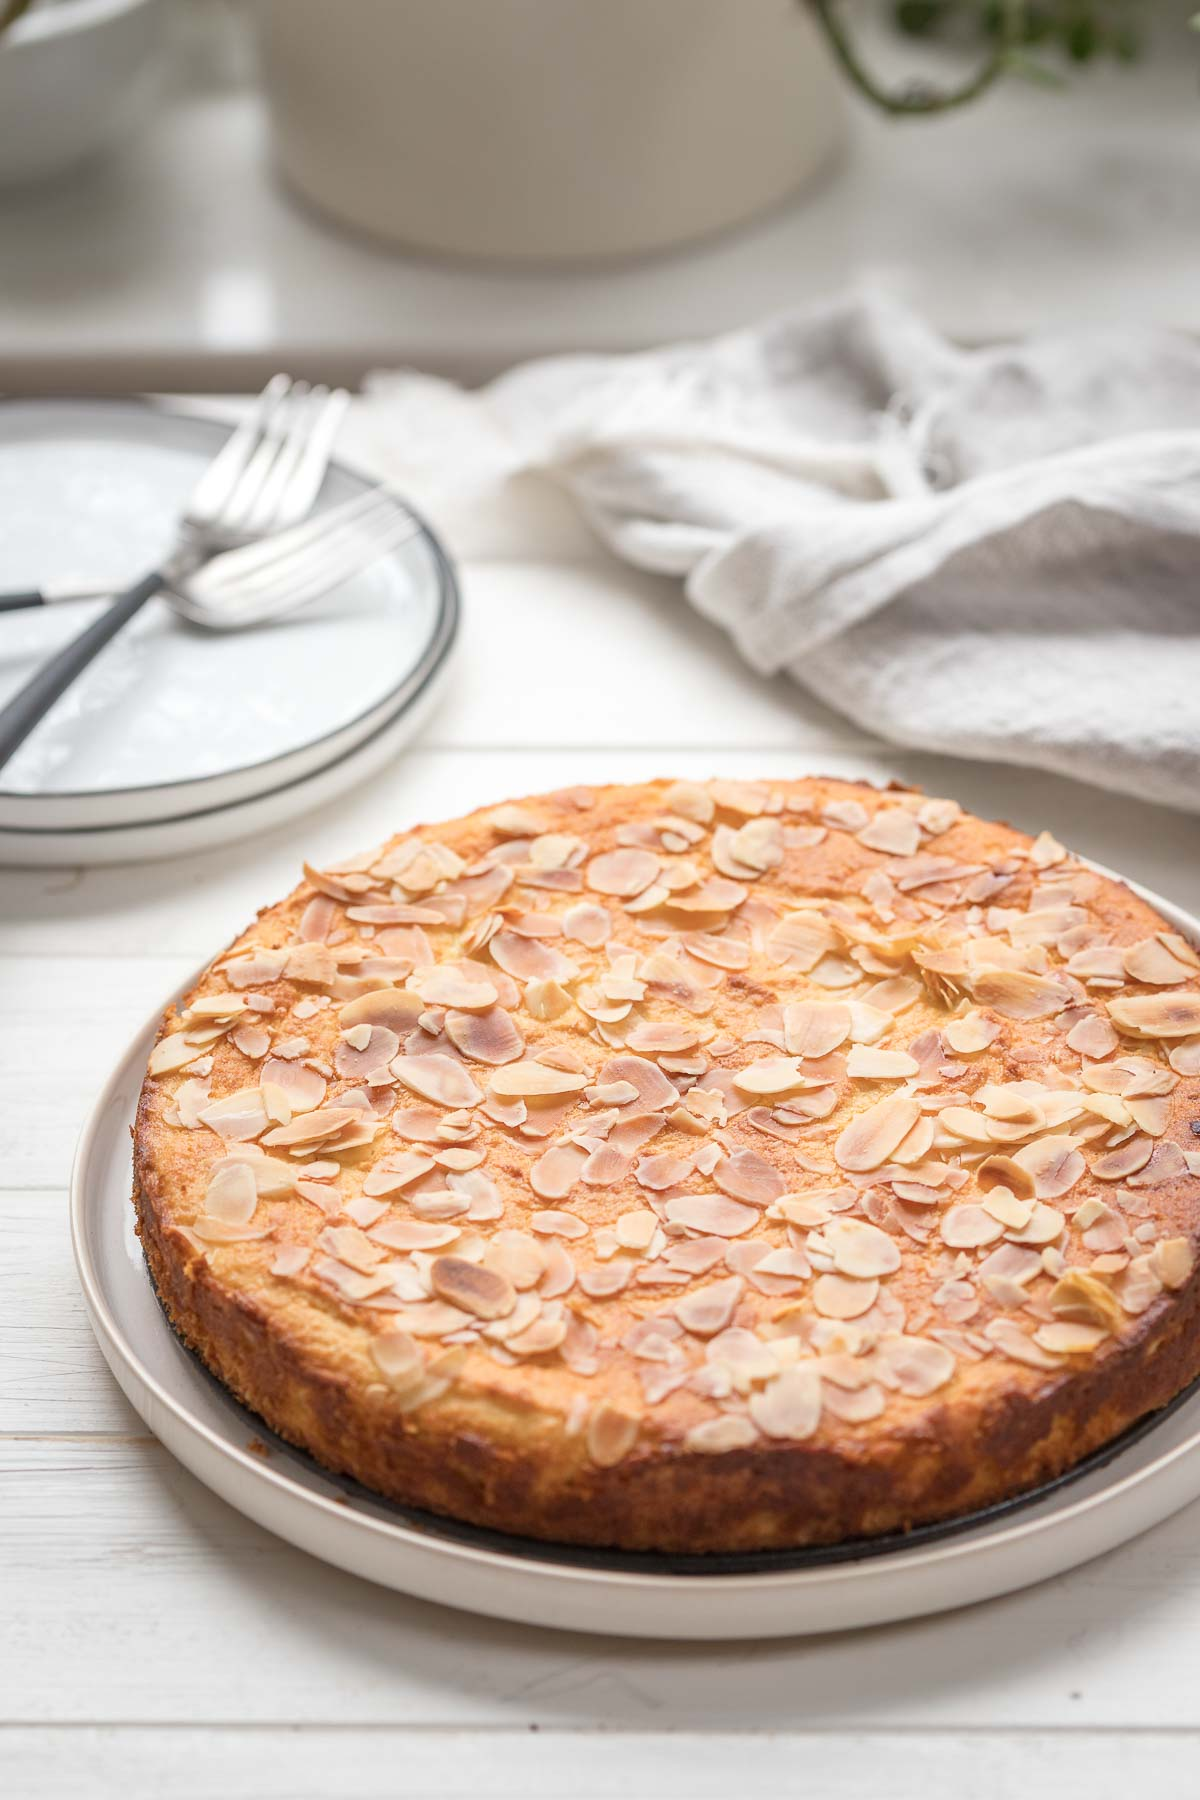 Gluten-free Almond Cake with Ricotta and Lemon